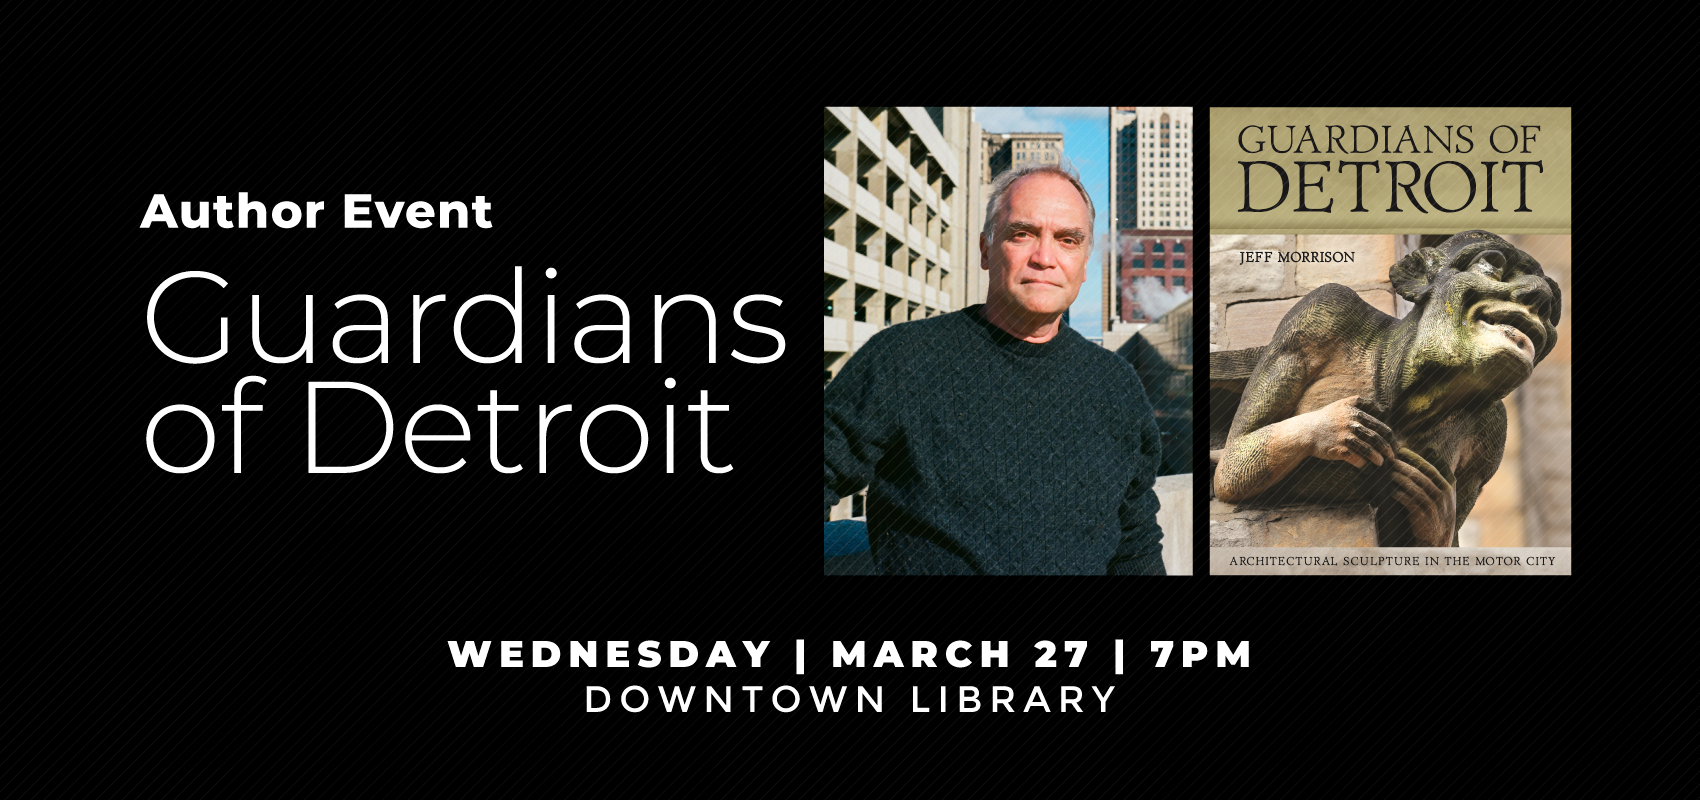 Guardians of Detroit - Wednesday March 27. .